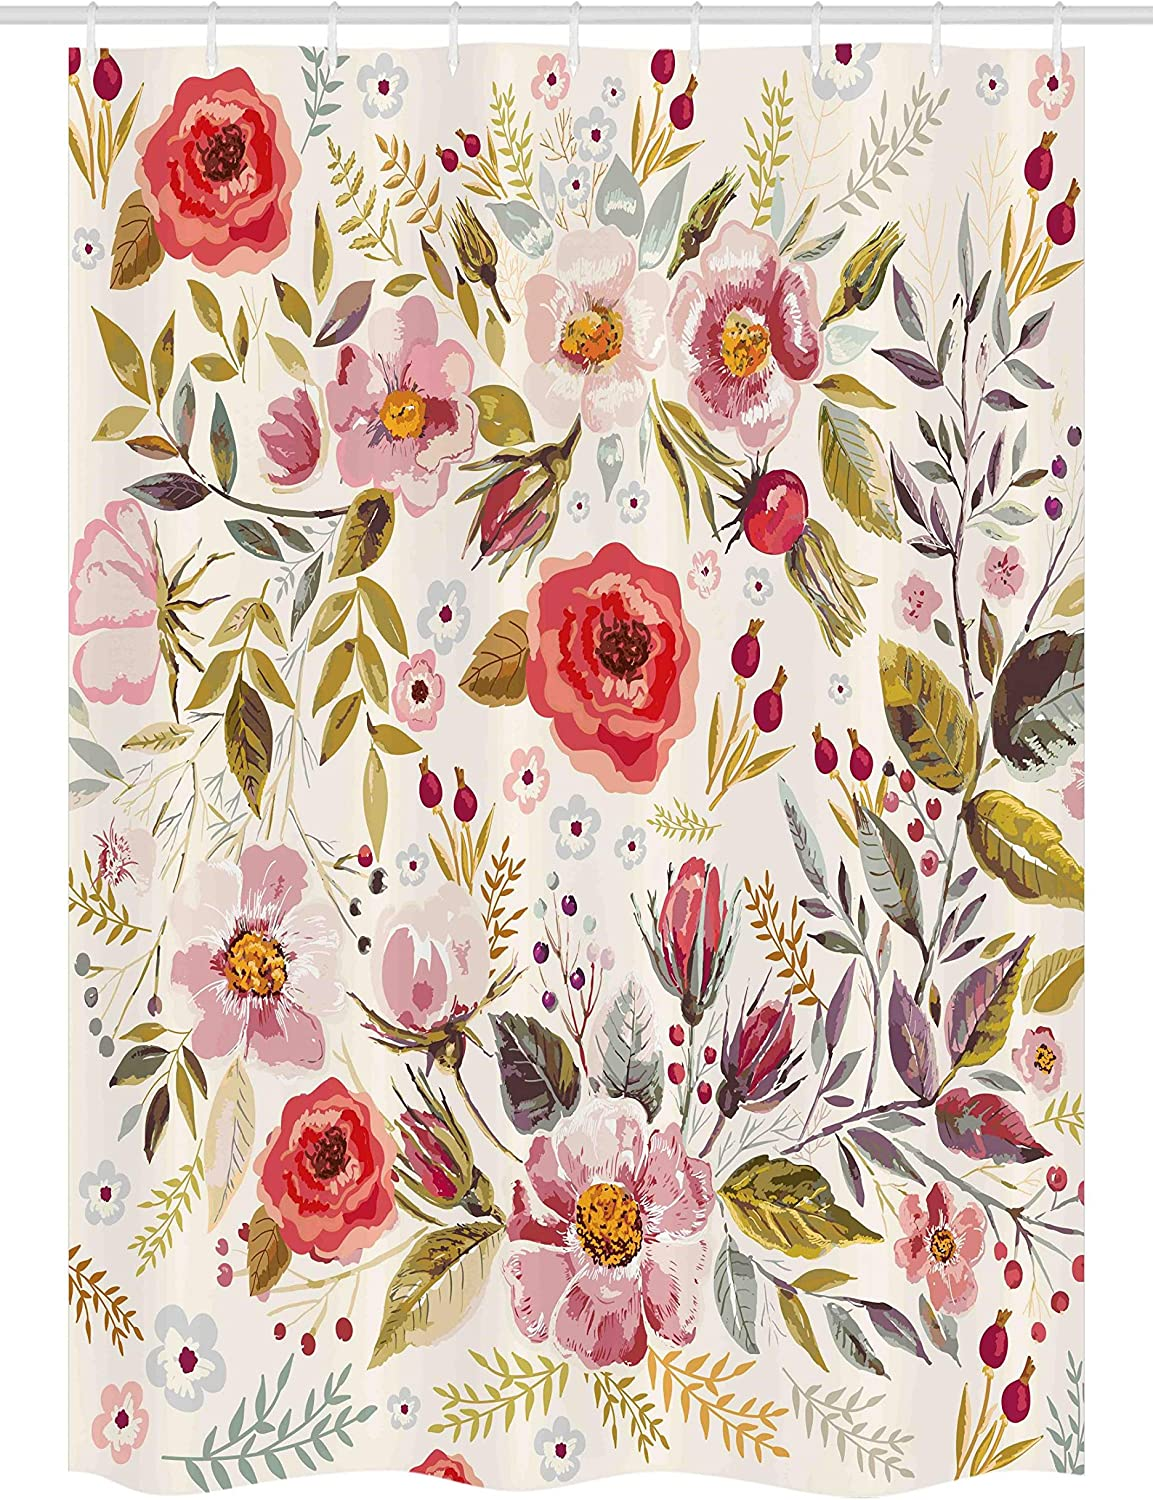 Ambesonne Vintage Stall Shower Curtain, Floral Theme Hand Drawn Romantic Flowers and Leaves Illustration, Fabric Bathroom Decor Set with Hooks, 54 W x 78 L Inches, Light Pink Red and Cream